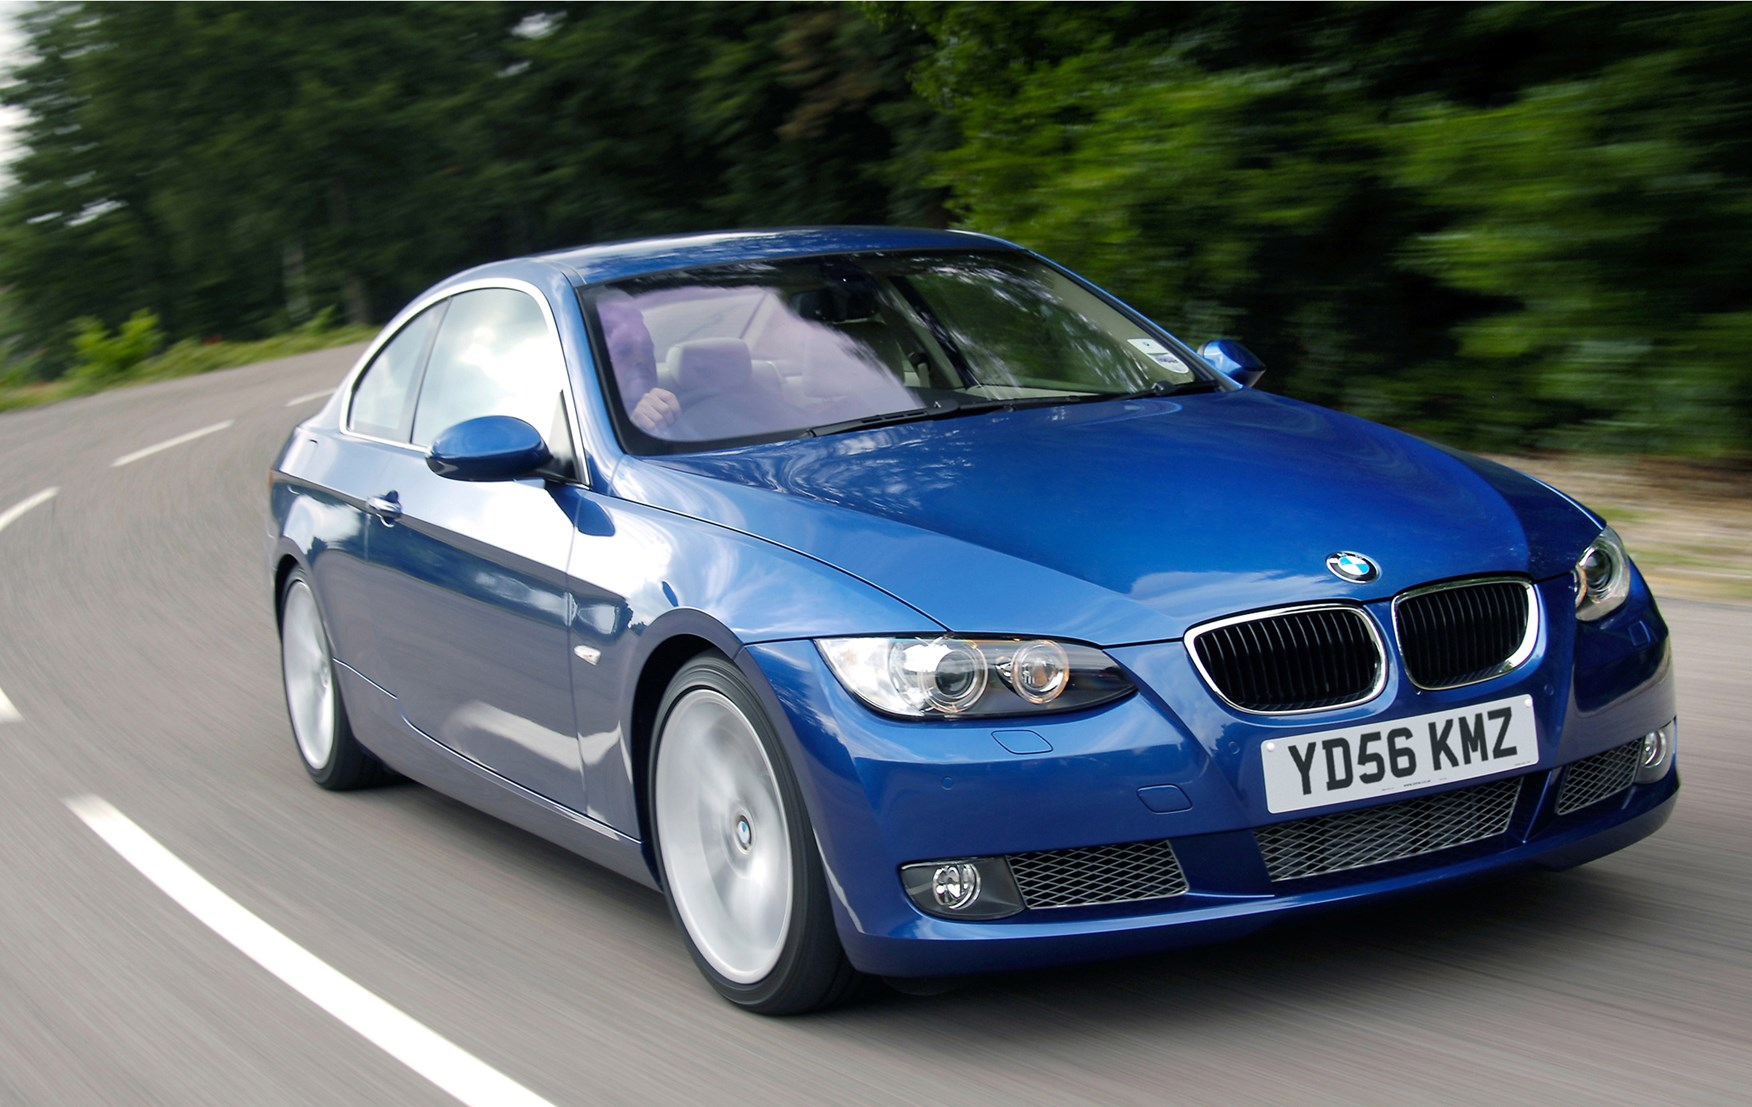 bmw 330d coupe lease deals lamoureph blog. Black Bedroom Furniture Sets. Home Design Ideas